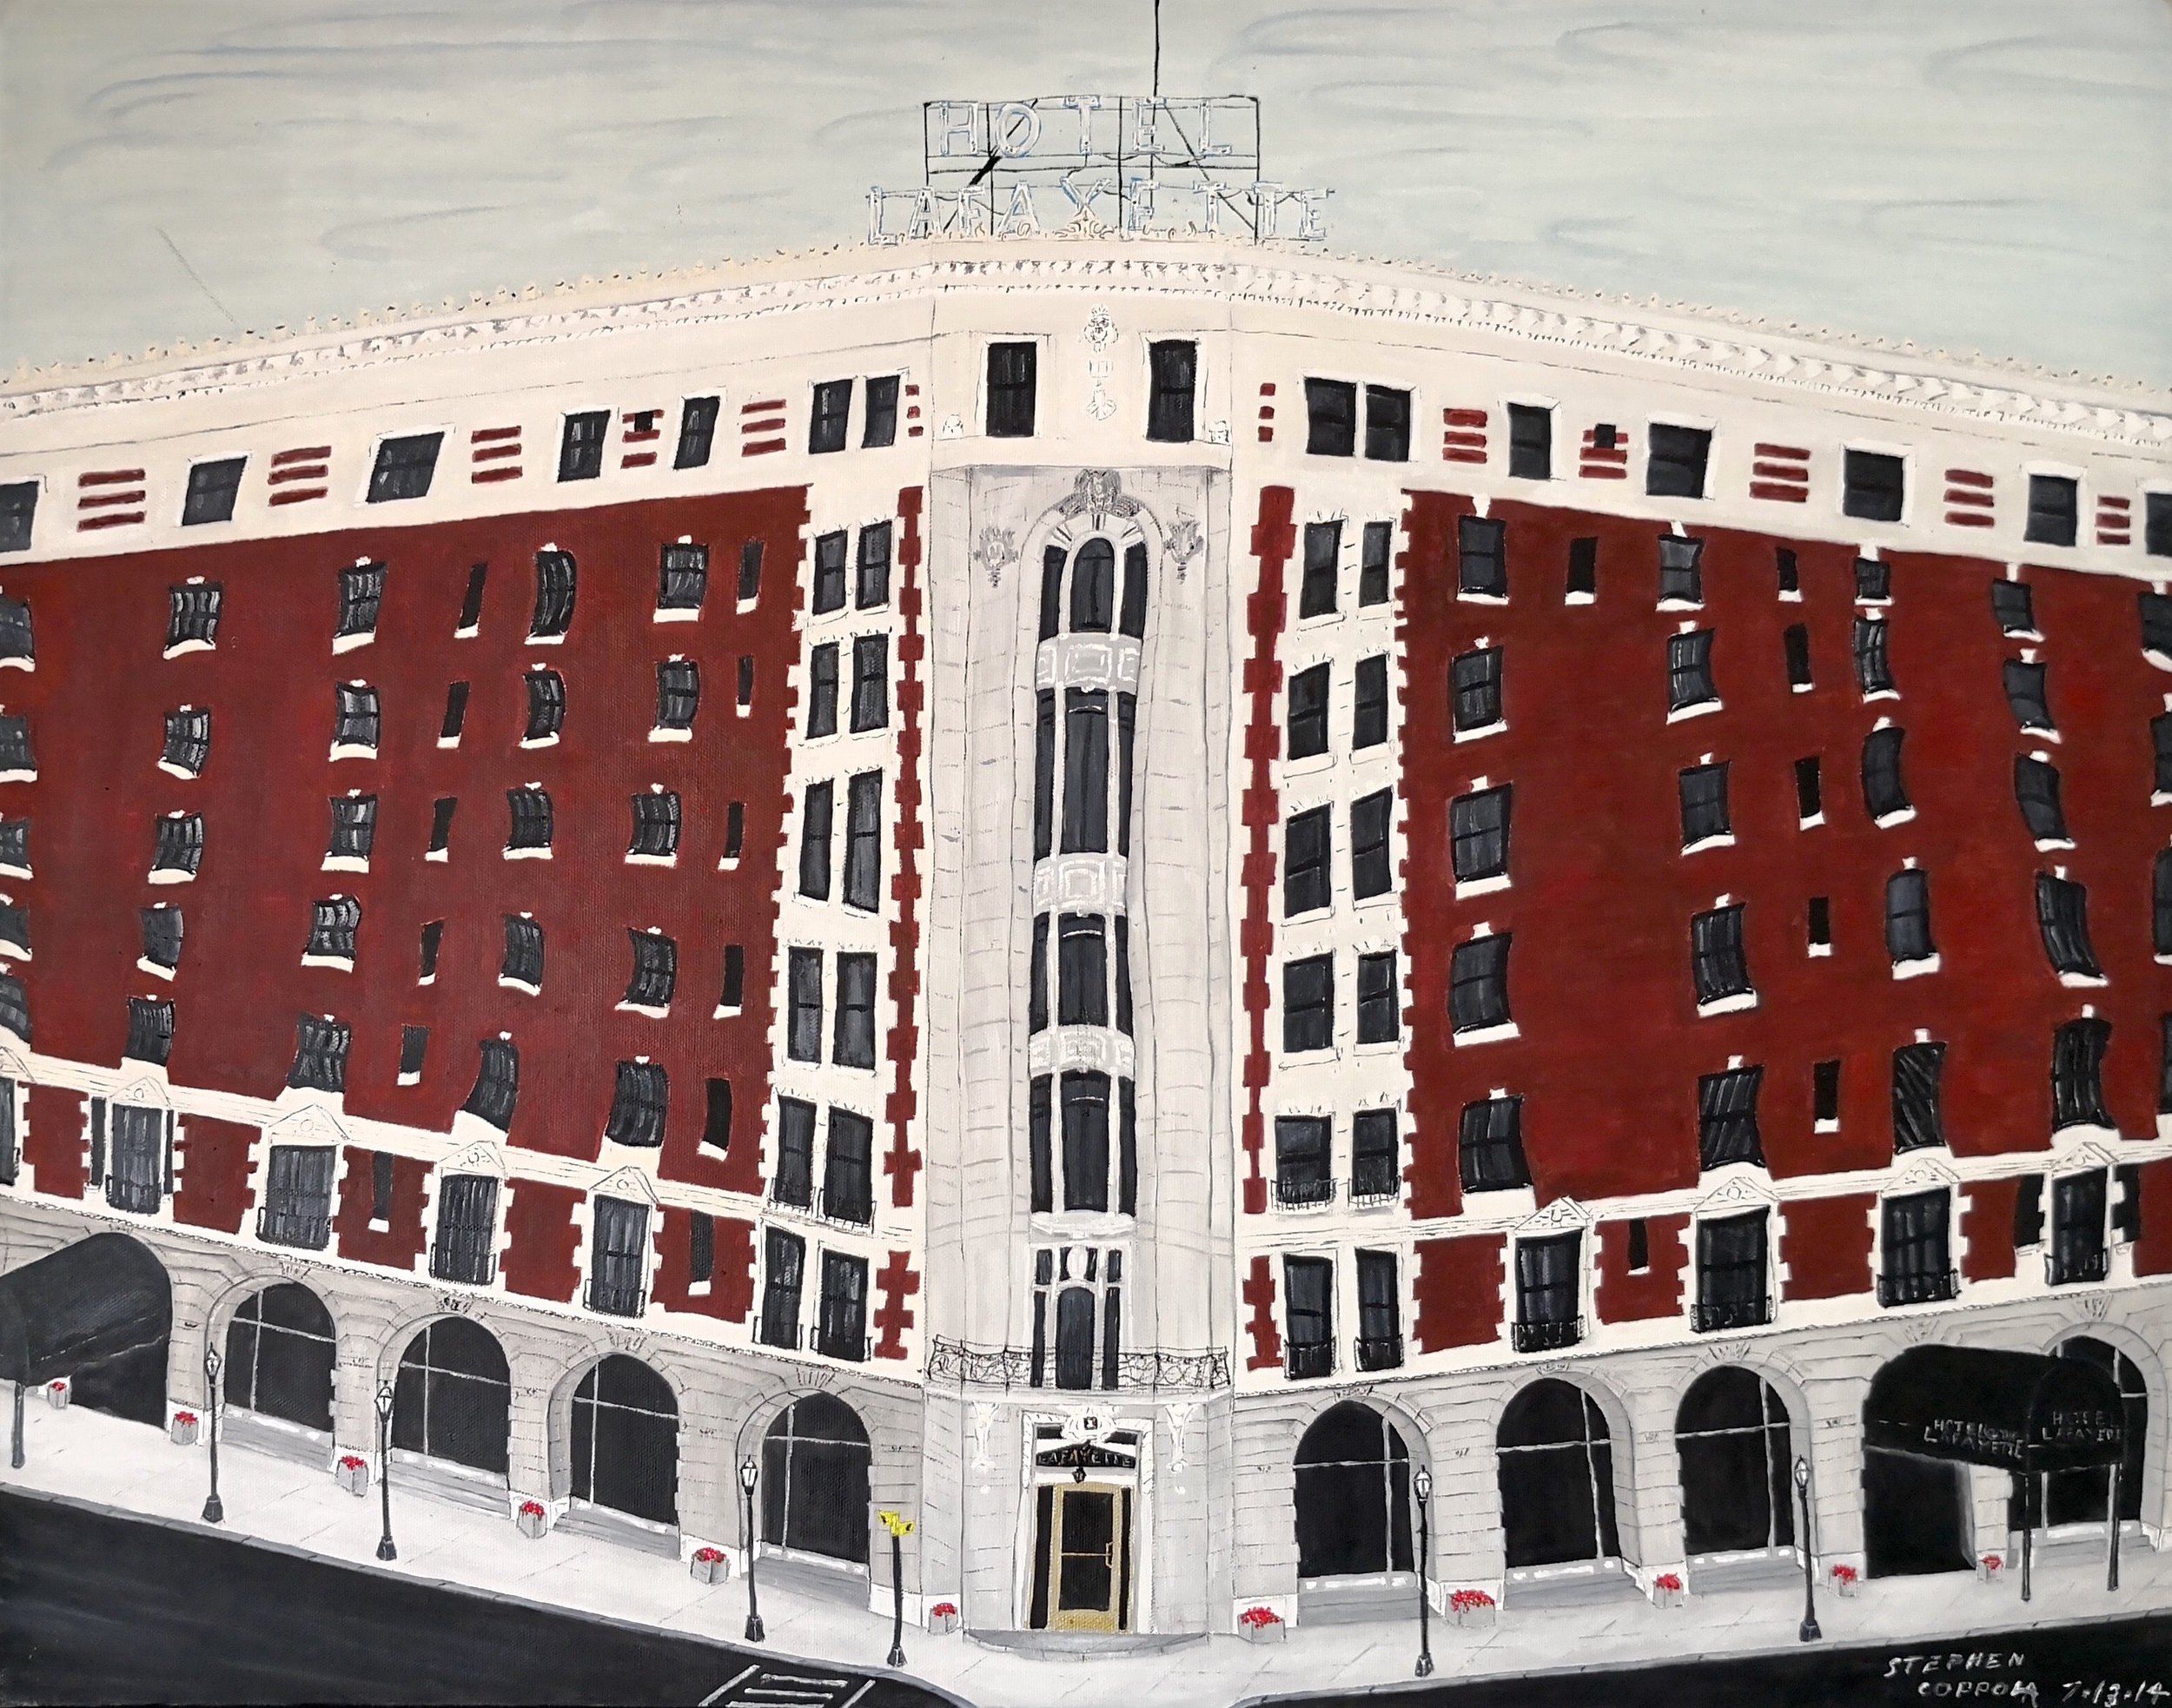 Stephen Coppola, Hotel Lafayette, Oil on canvas, 22 x 28 inches (55.9 x 71.1 cm)